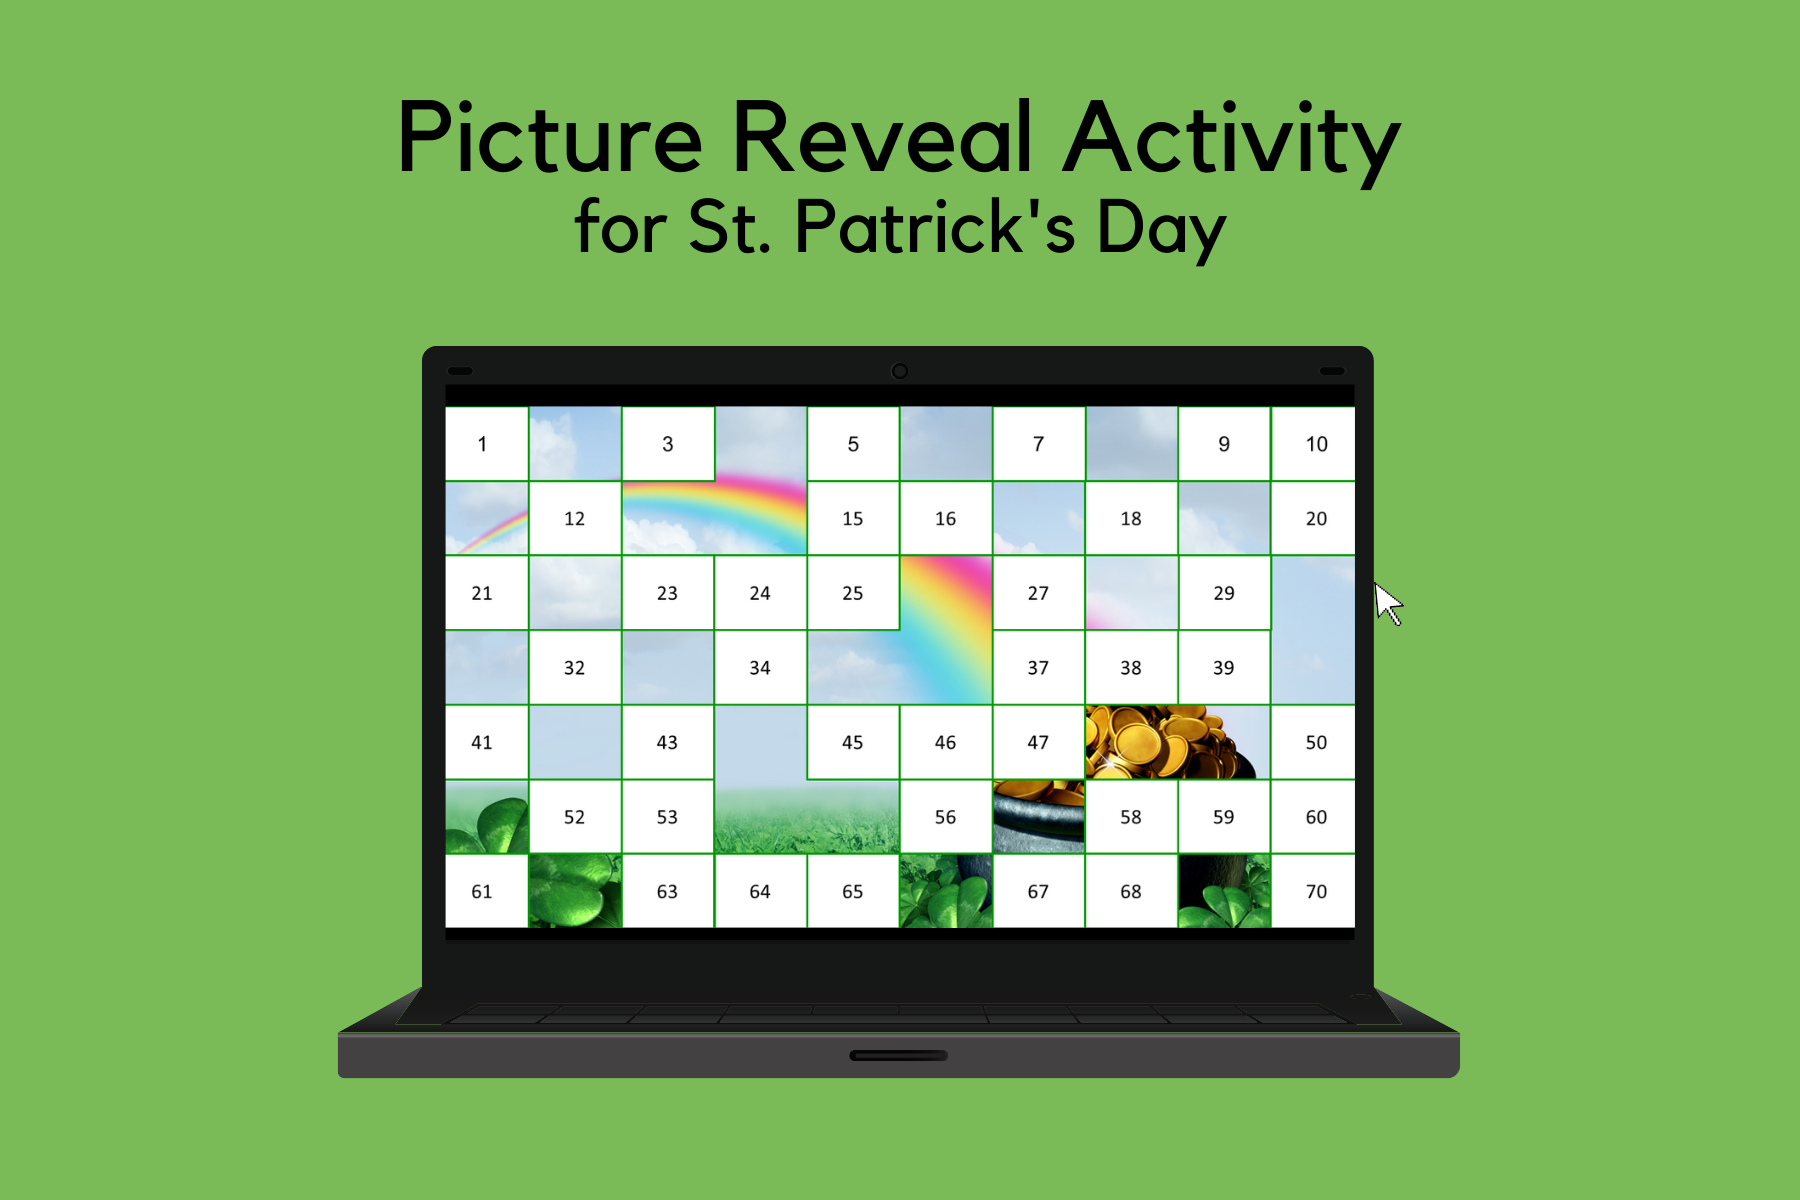 Picture Reveal Reinforcement Activity for St. Patrick's Day